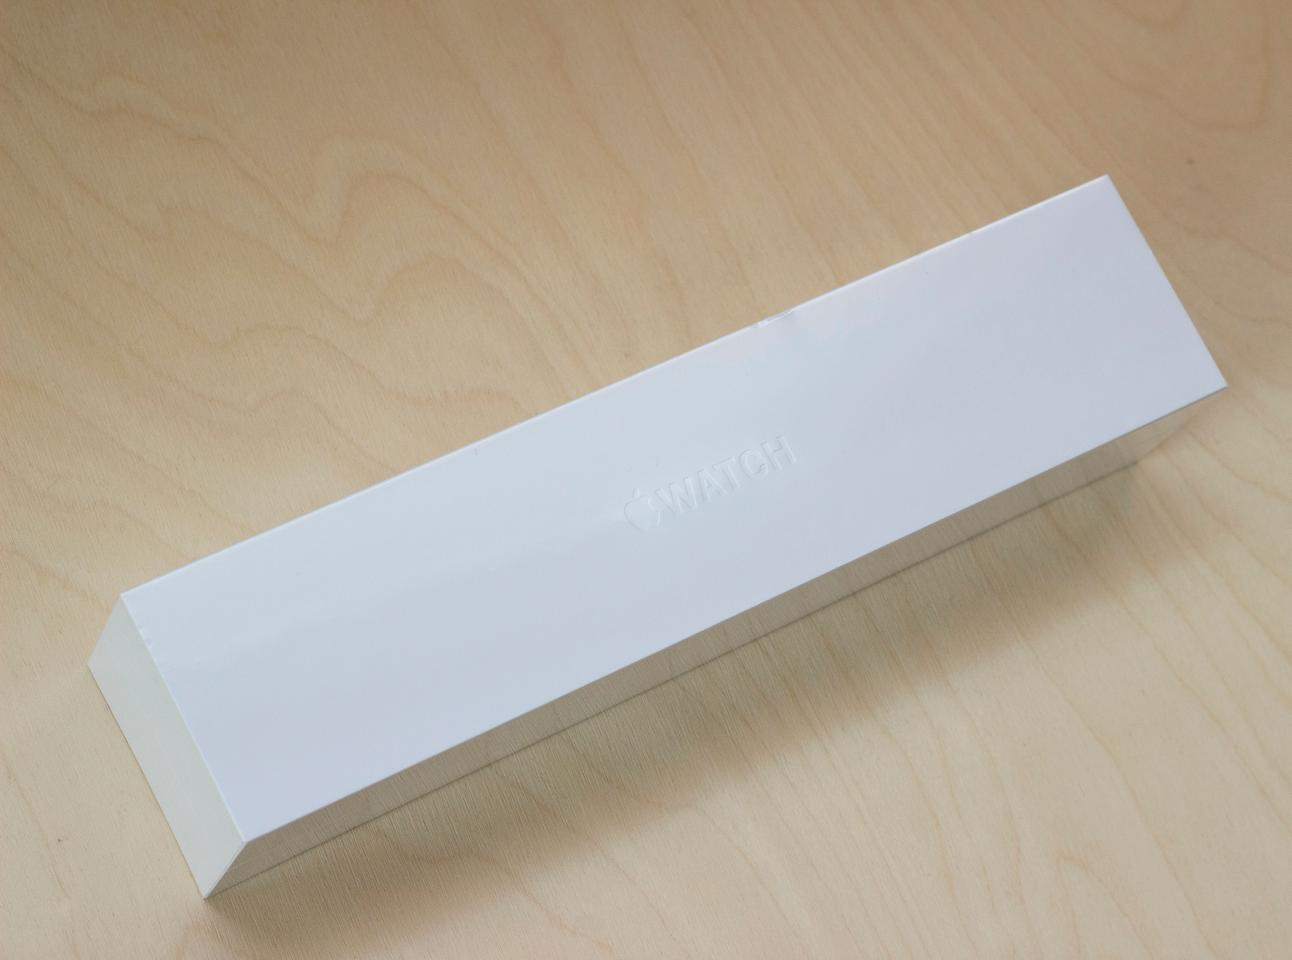 Retail packaging for the Apple Watch Sport (Photo: Will Shanklin/Gizmag.com)